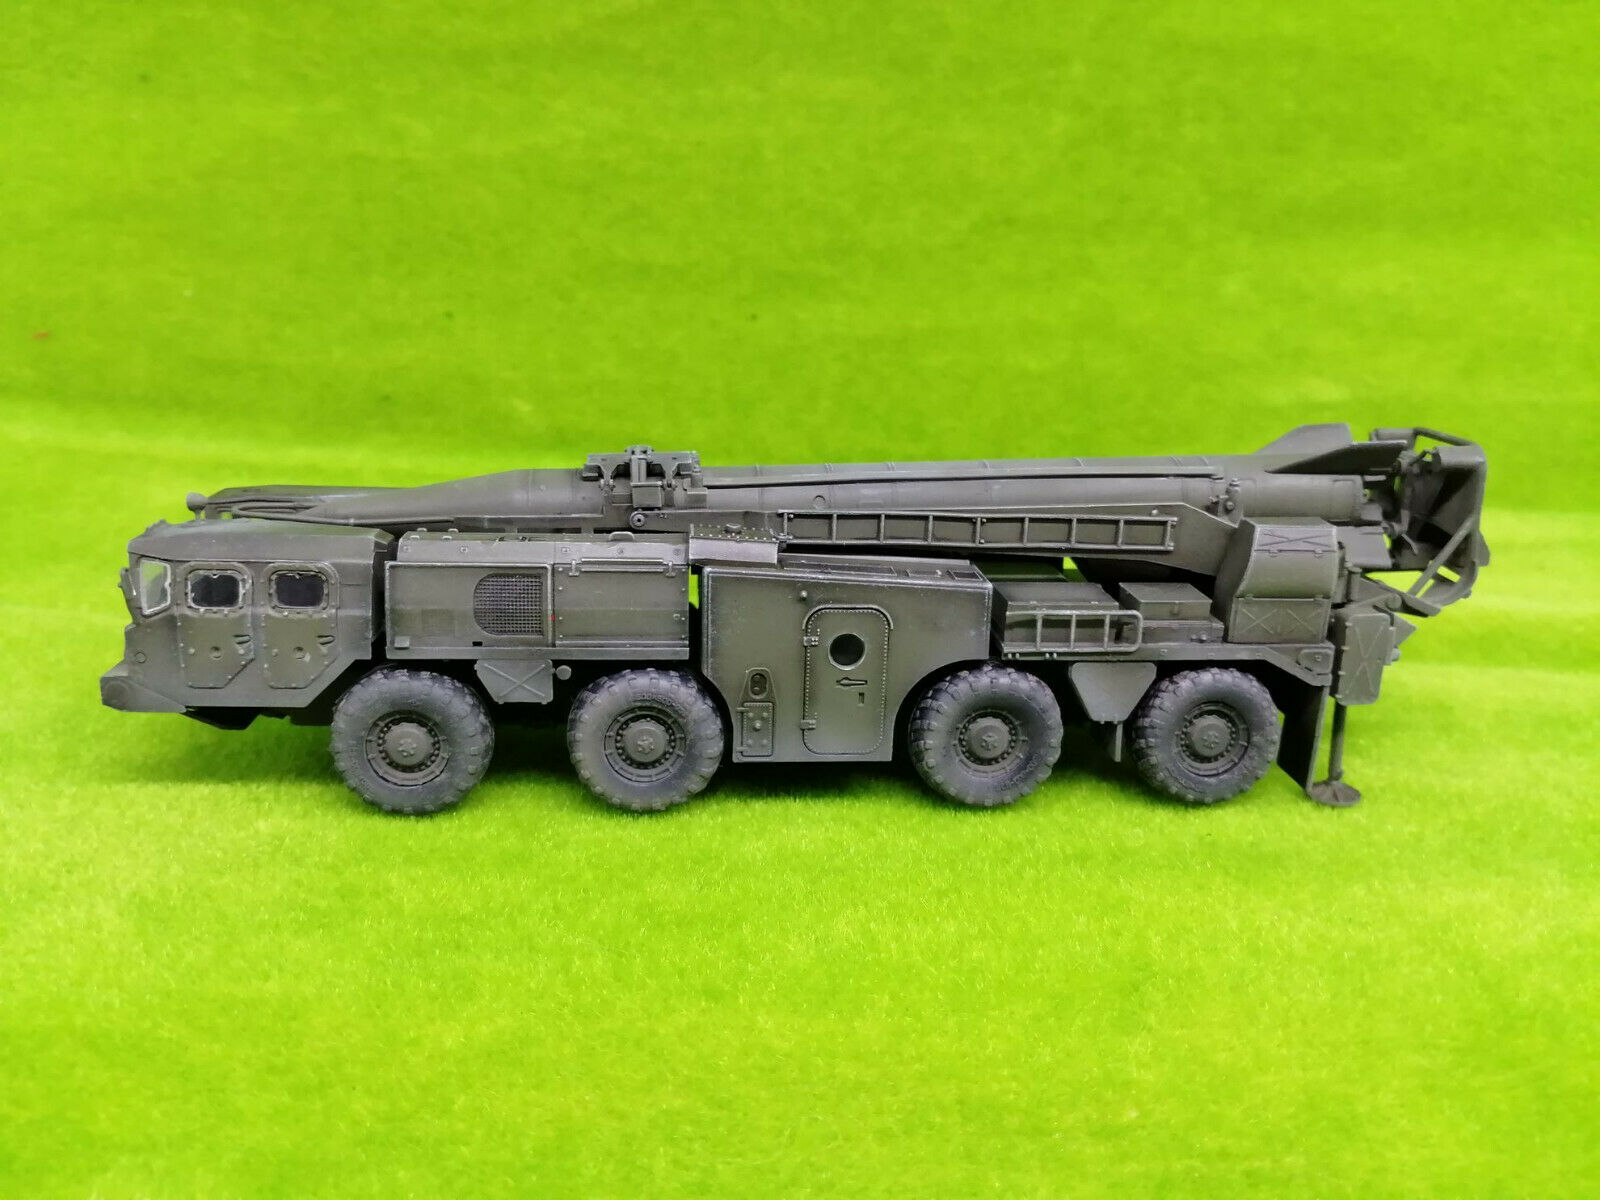 ModelCollect AS72139 1 72 Soviet (9P117M1) Laungher with R17 rocket of